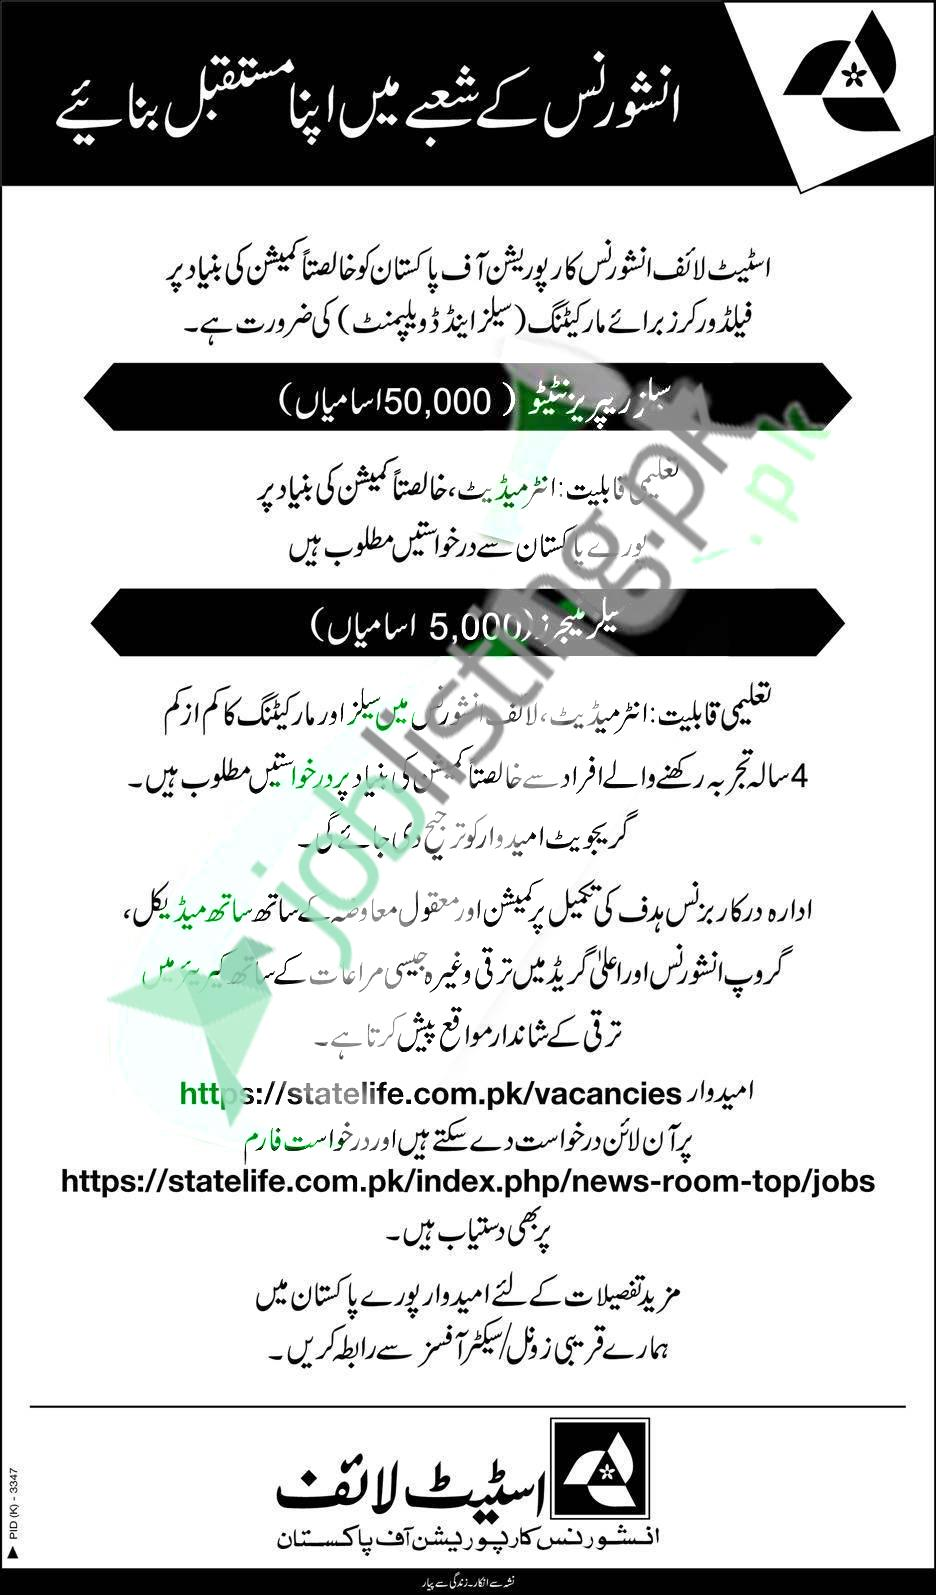 Multiple Positions Vacant in State Life Insurance Corporation of Pakistan